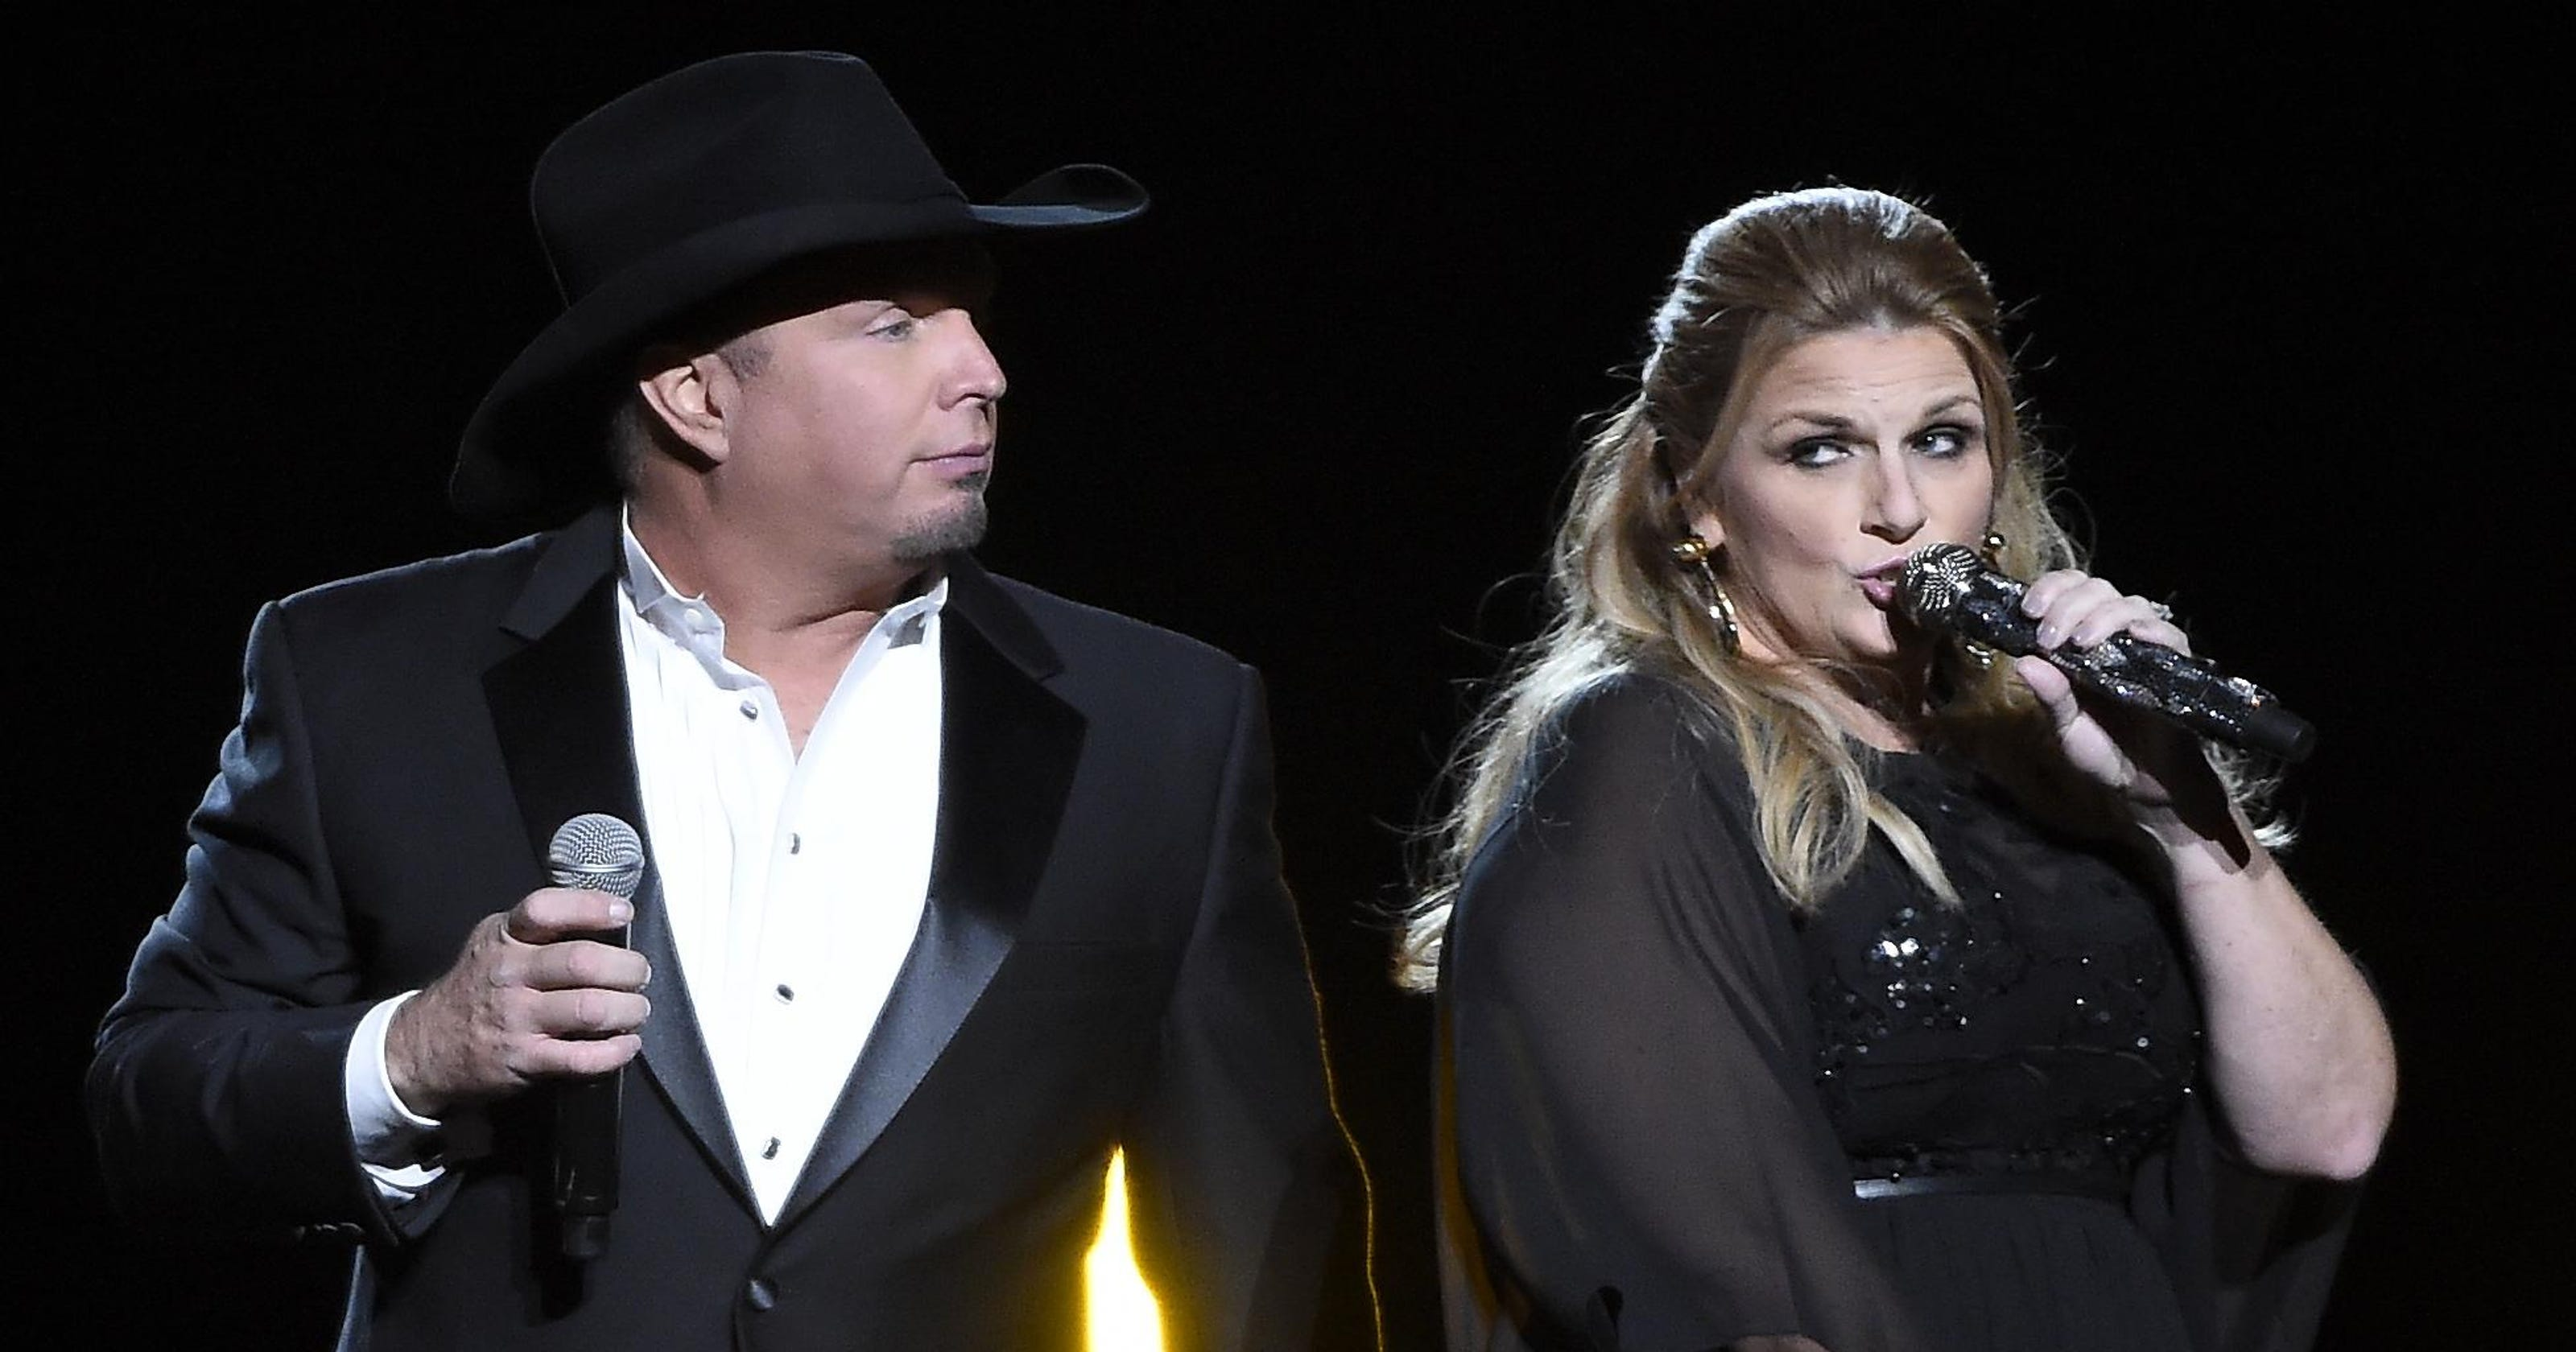 Garth Brooks Resurrects 90s Country Radio At World Tour